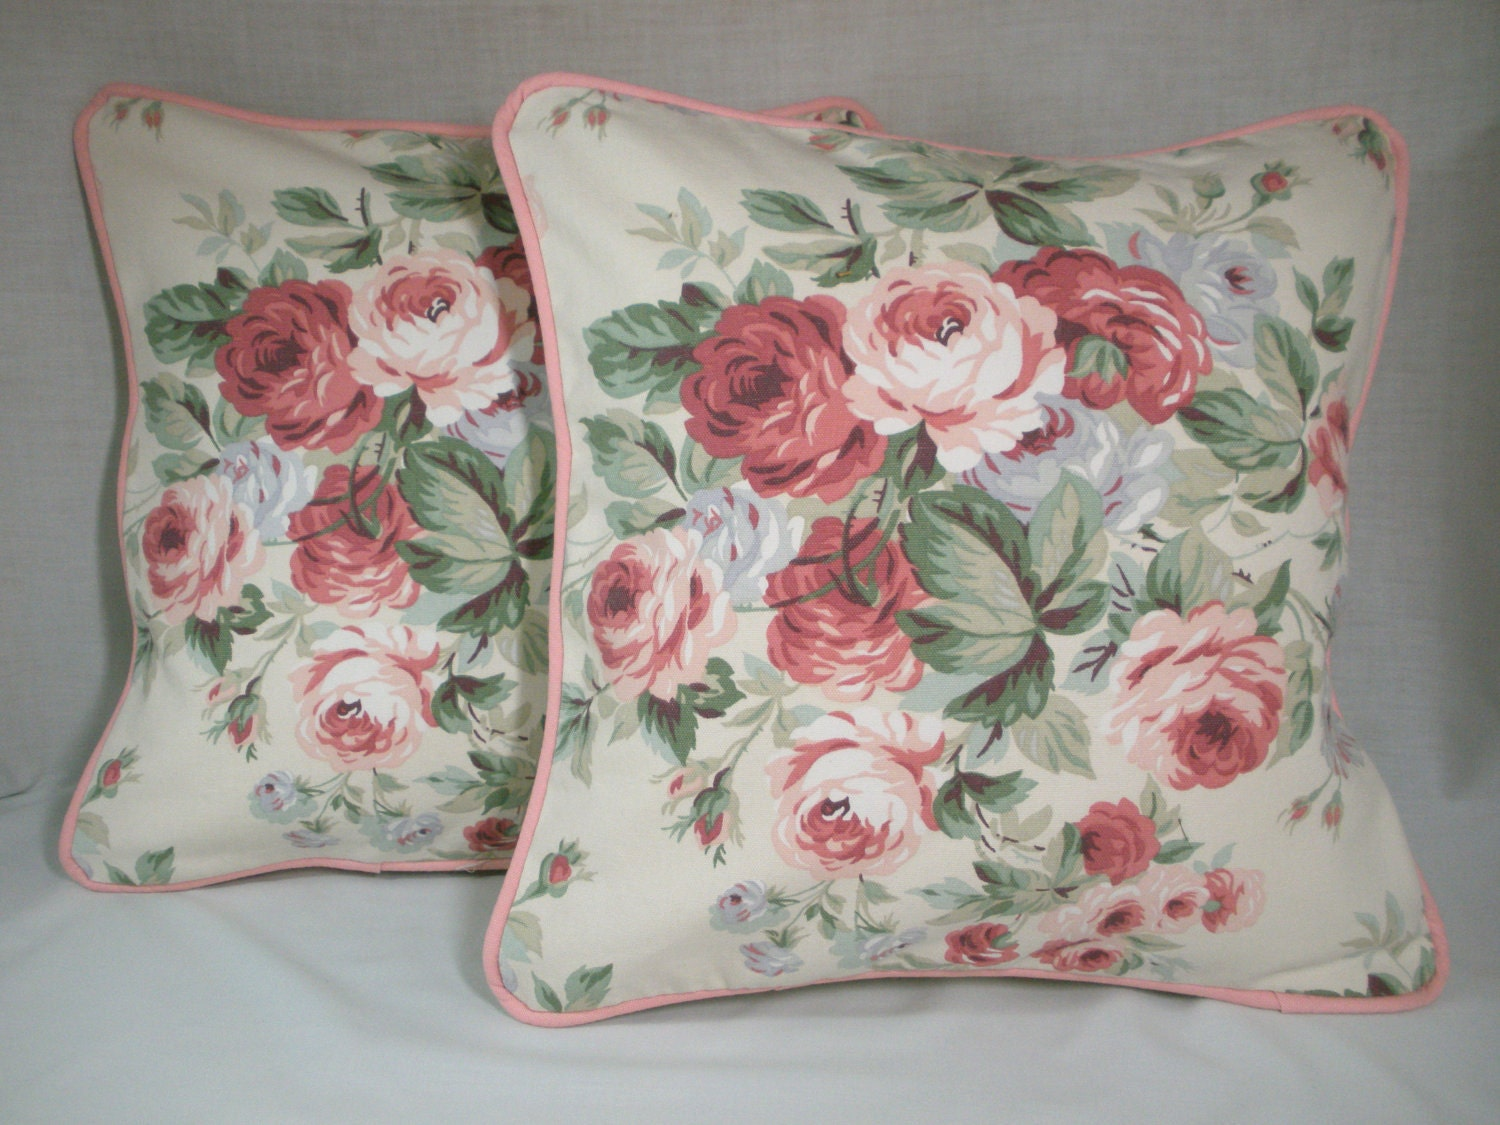 Etsy Shabby Chic Throw Pillows : Shabby Chic Cabbage Rose Throw Pillow Cover by ozmamade on Etsy